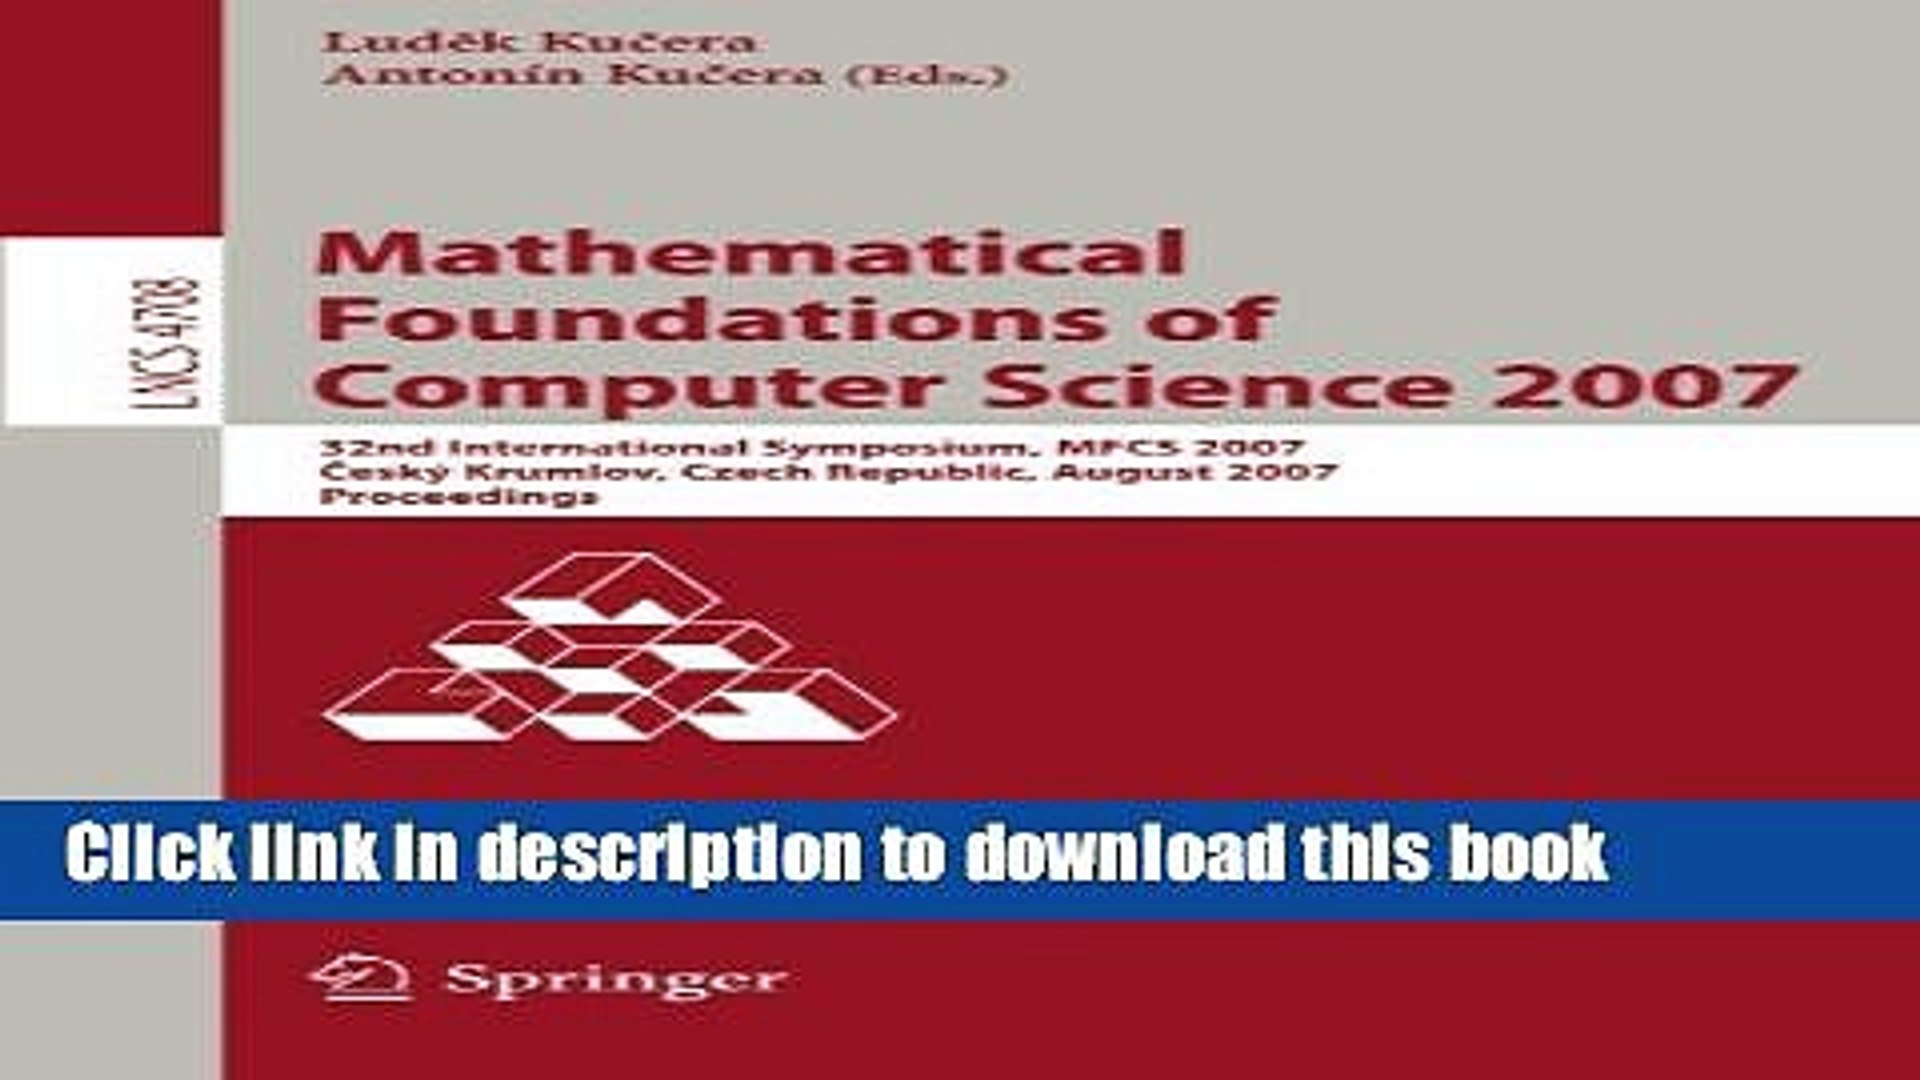 Read Mathematical Foundations of Computer Science 2007: 32nd International Symposium, MFCS 2007